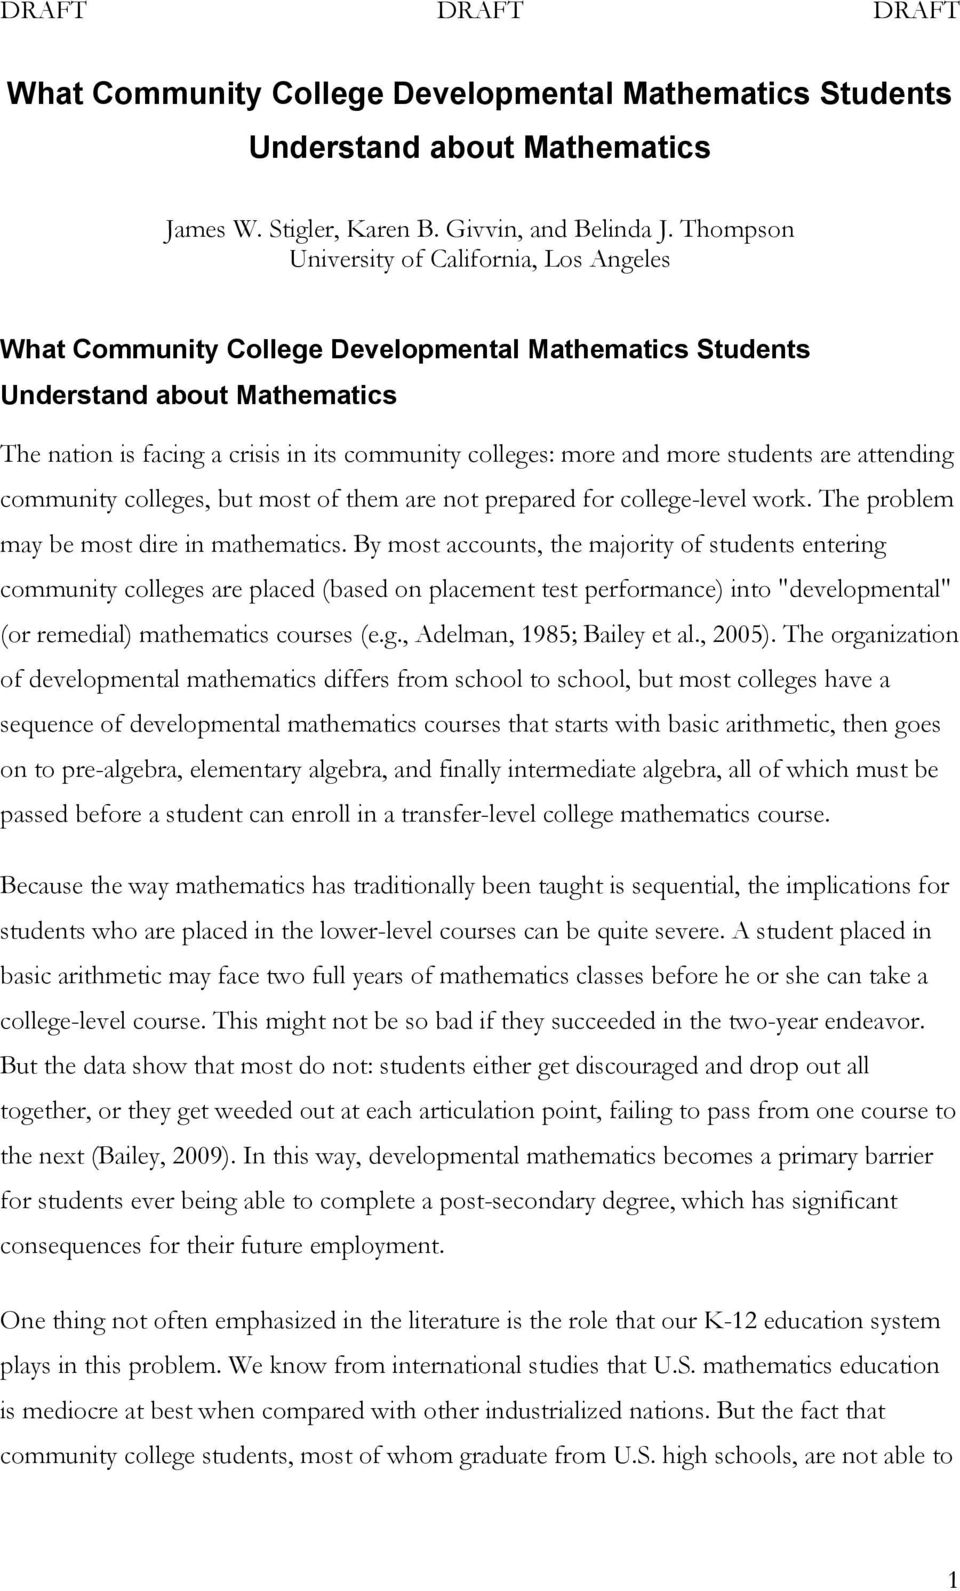 more students are attending community colleges, but most of them are not prepared for college-level work. The problem may be most dire in mathematics.